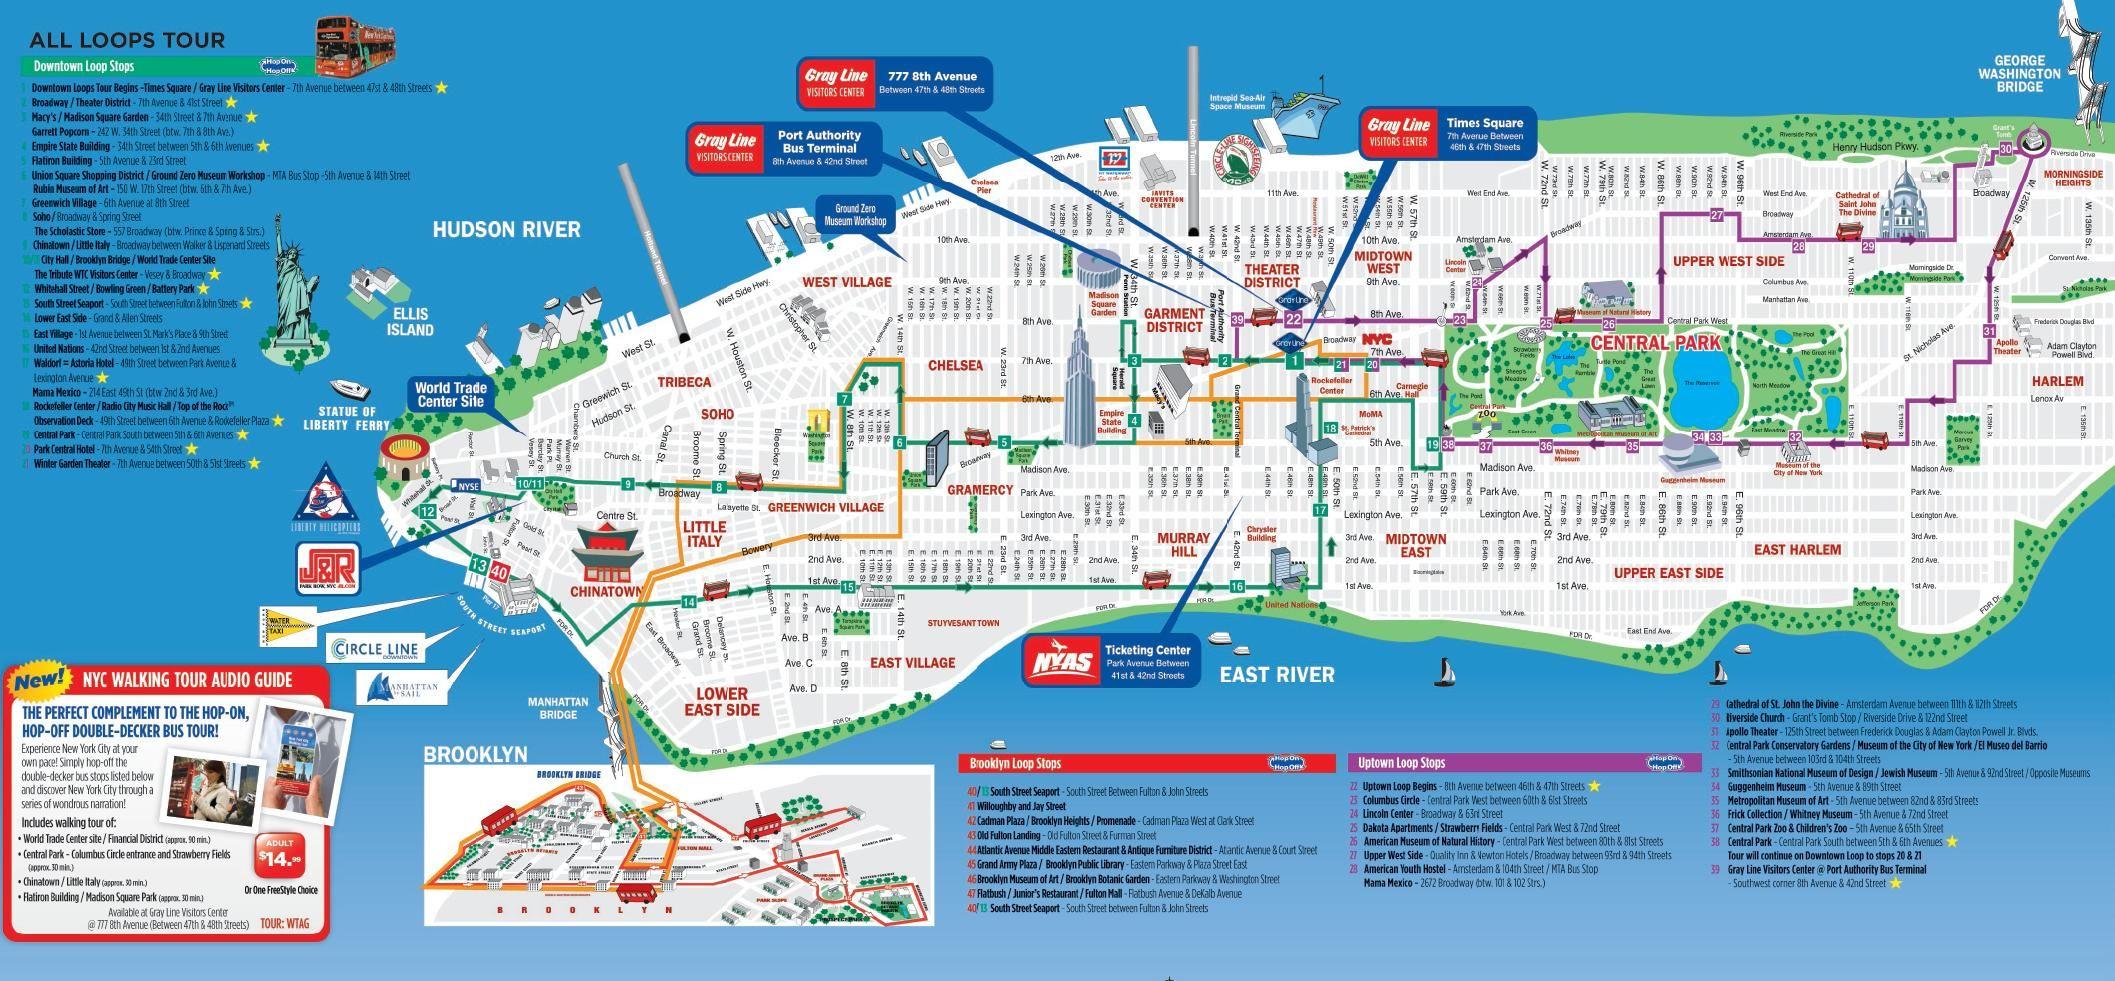 tourist map of new york city printable Click Here To View Grayline S All Loops Map Of New York Tourist